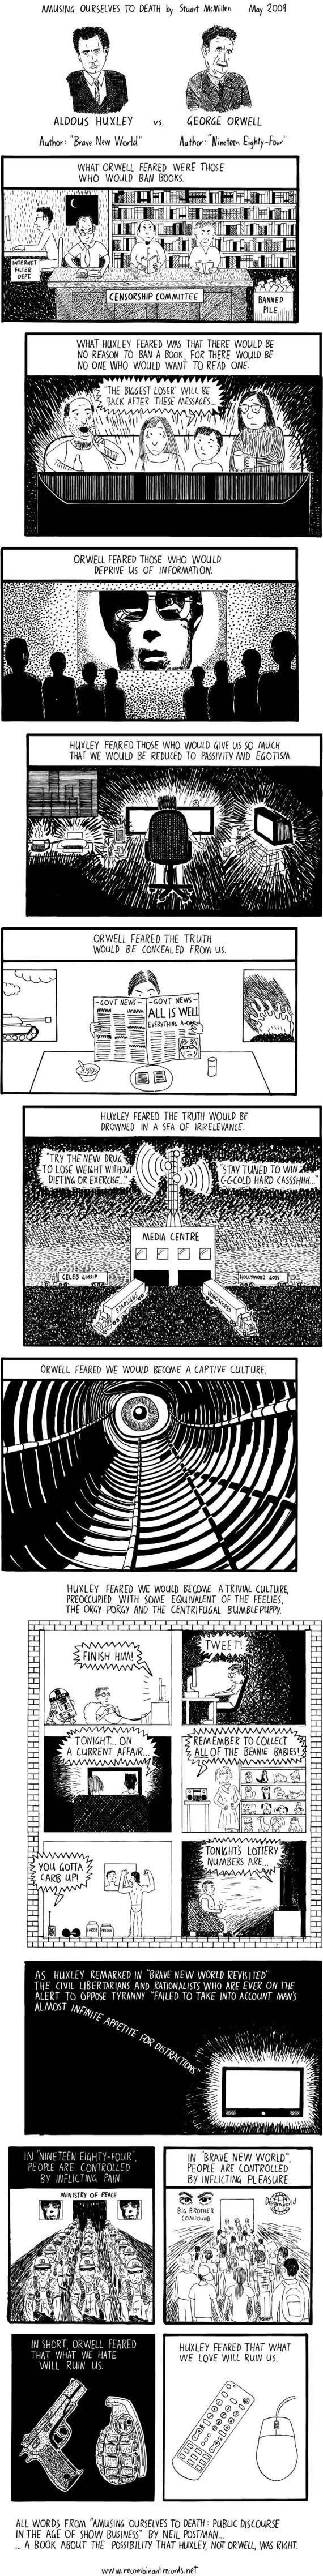 Huxley vs. Orwell: The Webcomic